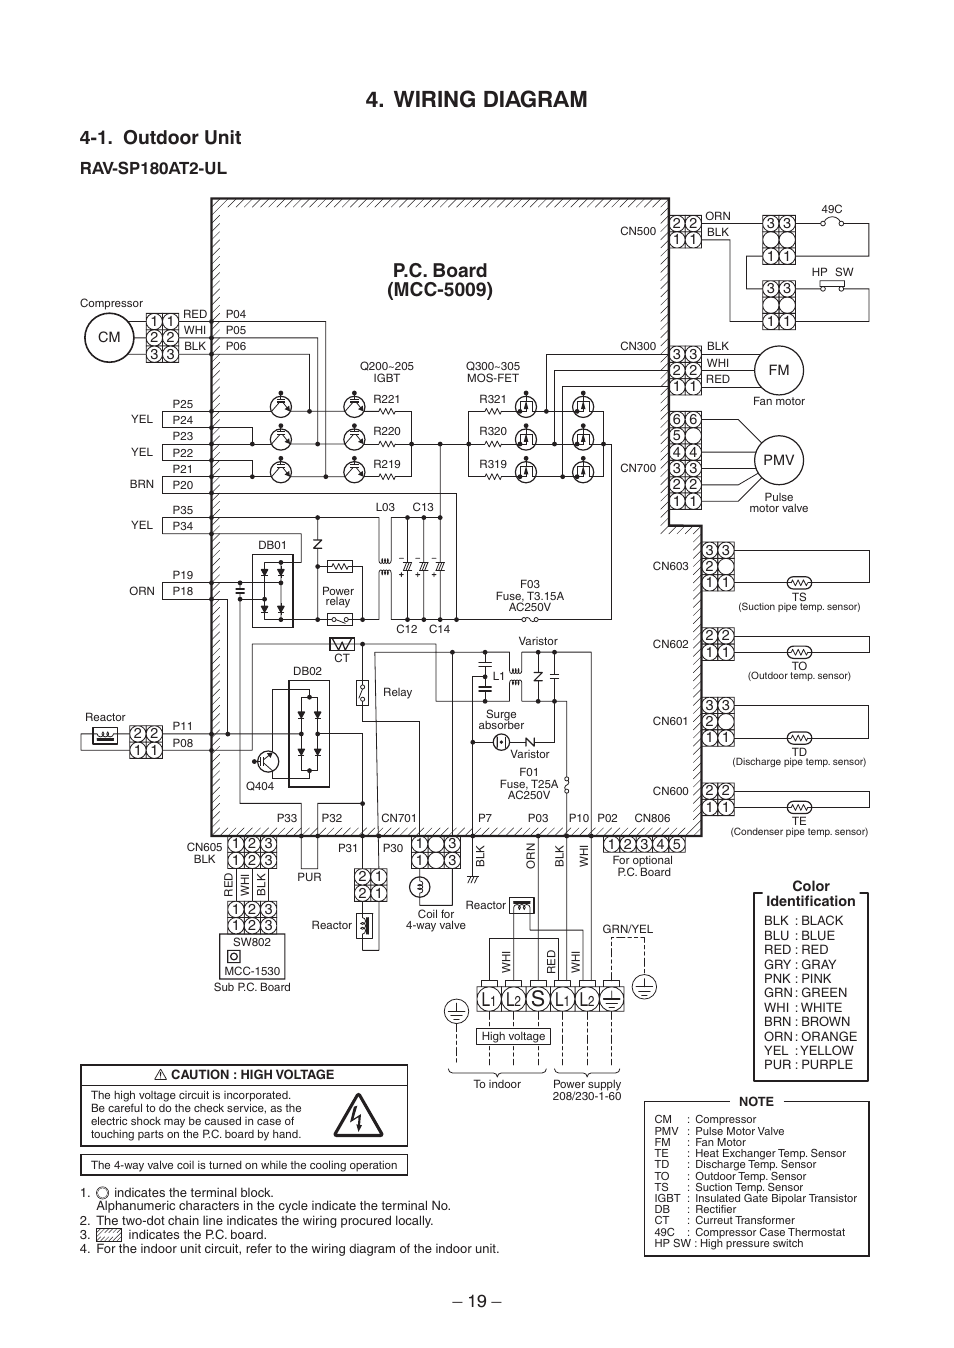 hight resolution of wiring diagram 1 outdoor unit p c board mcc 5009